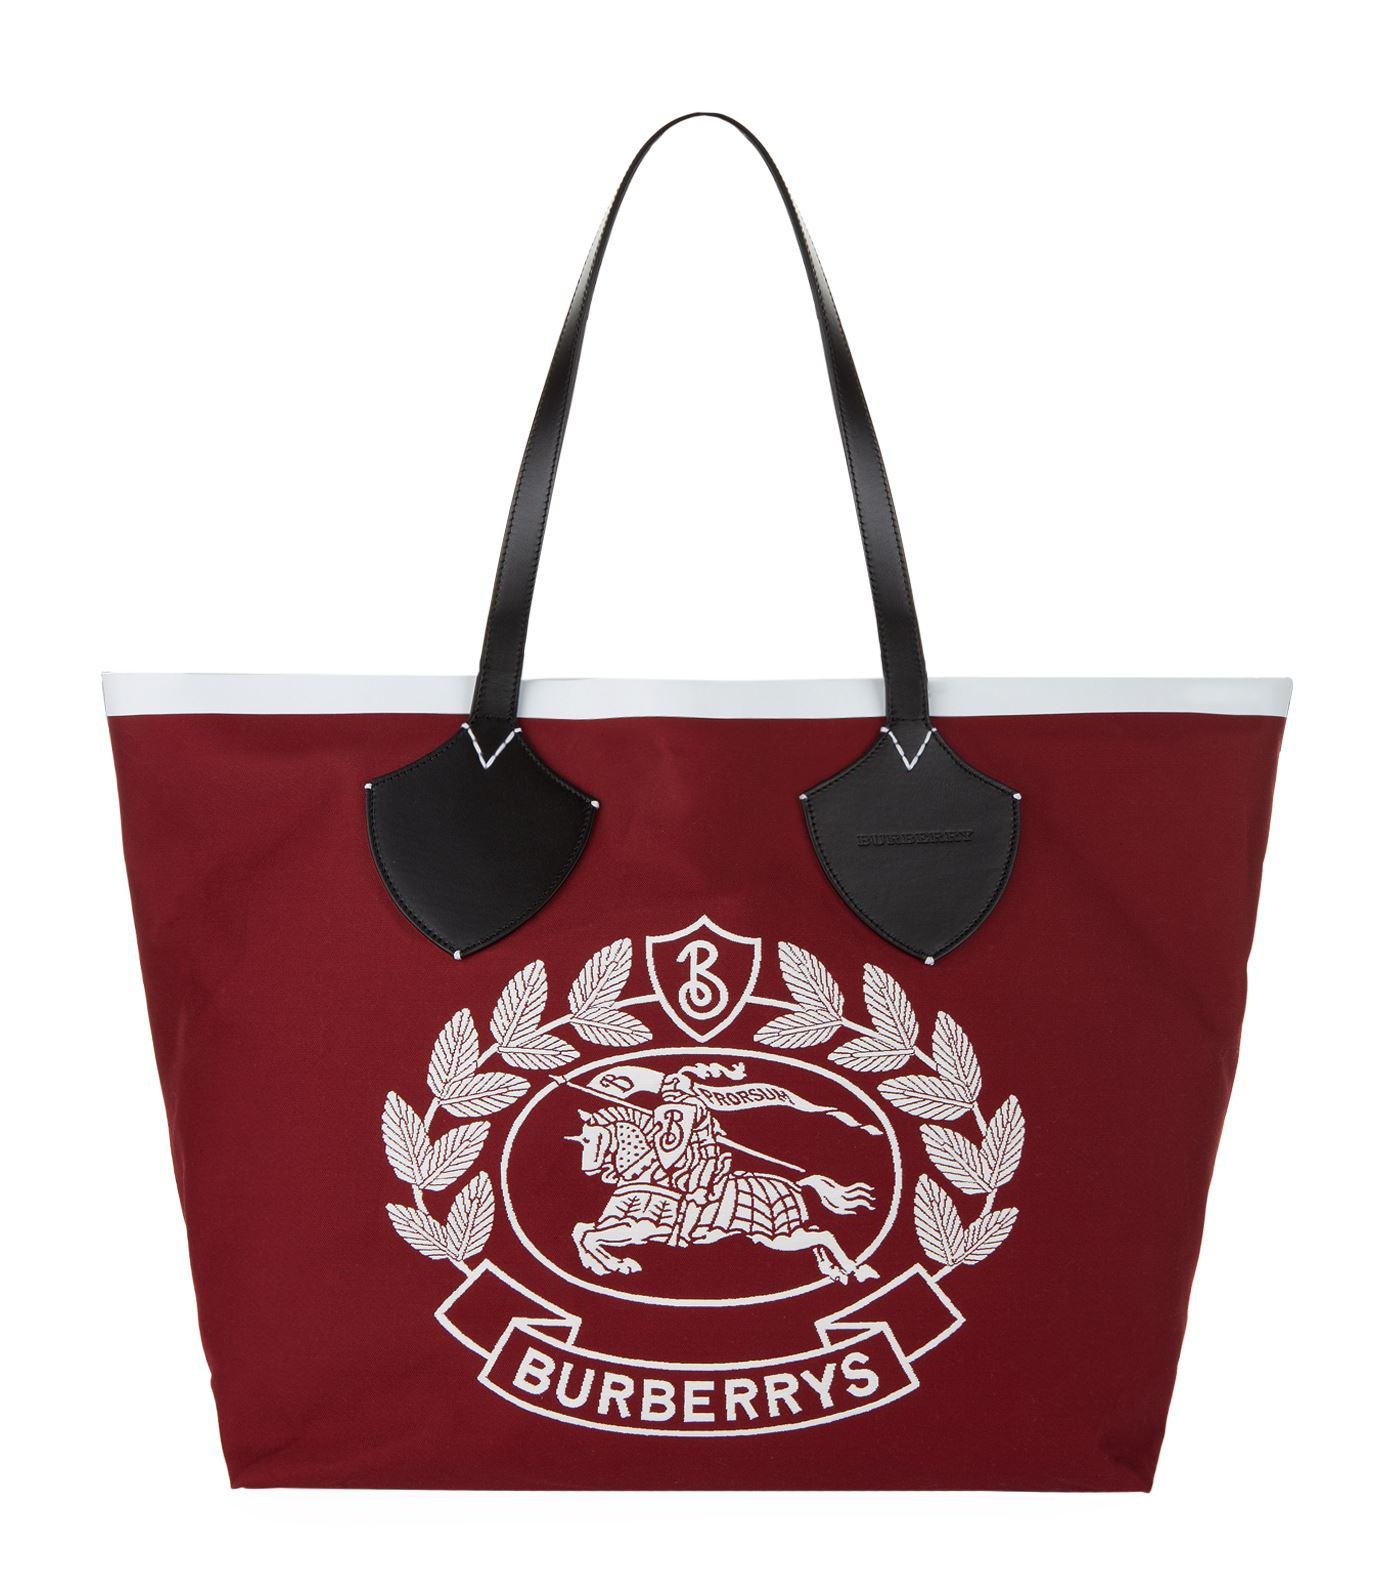 55d480ad70f6 Burberry Archive Logo Tote Bag in Red - Lyst